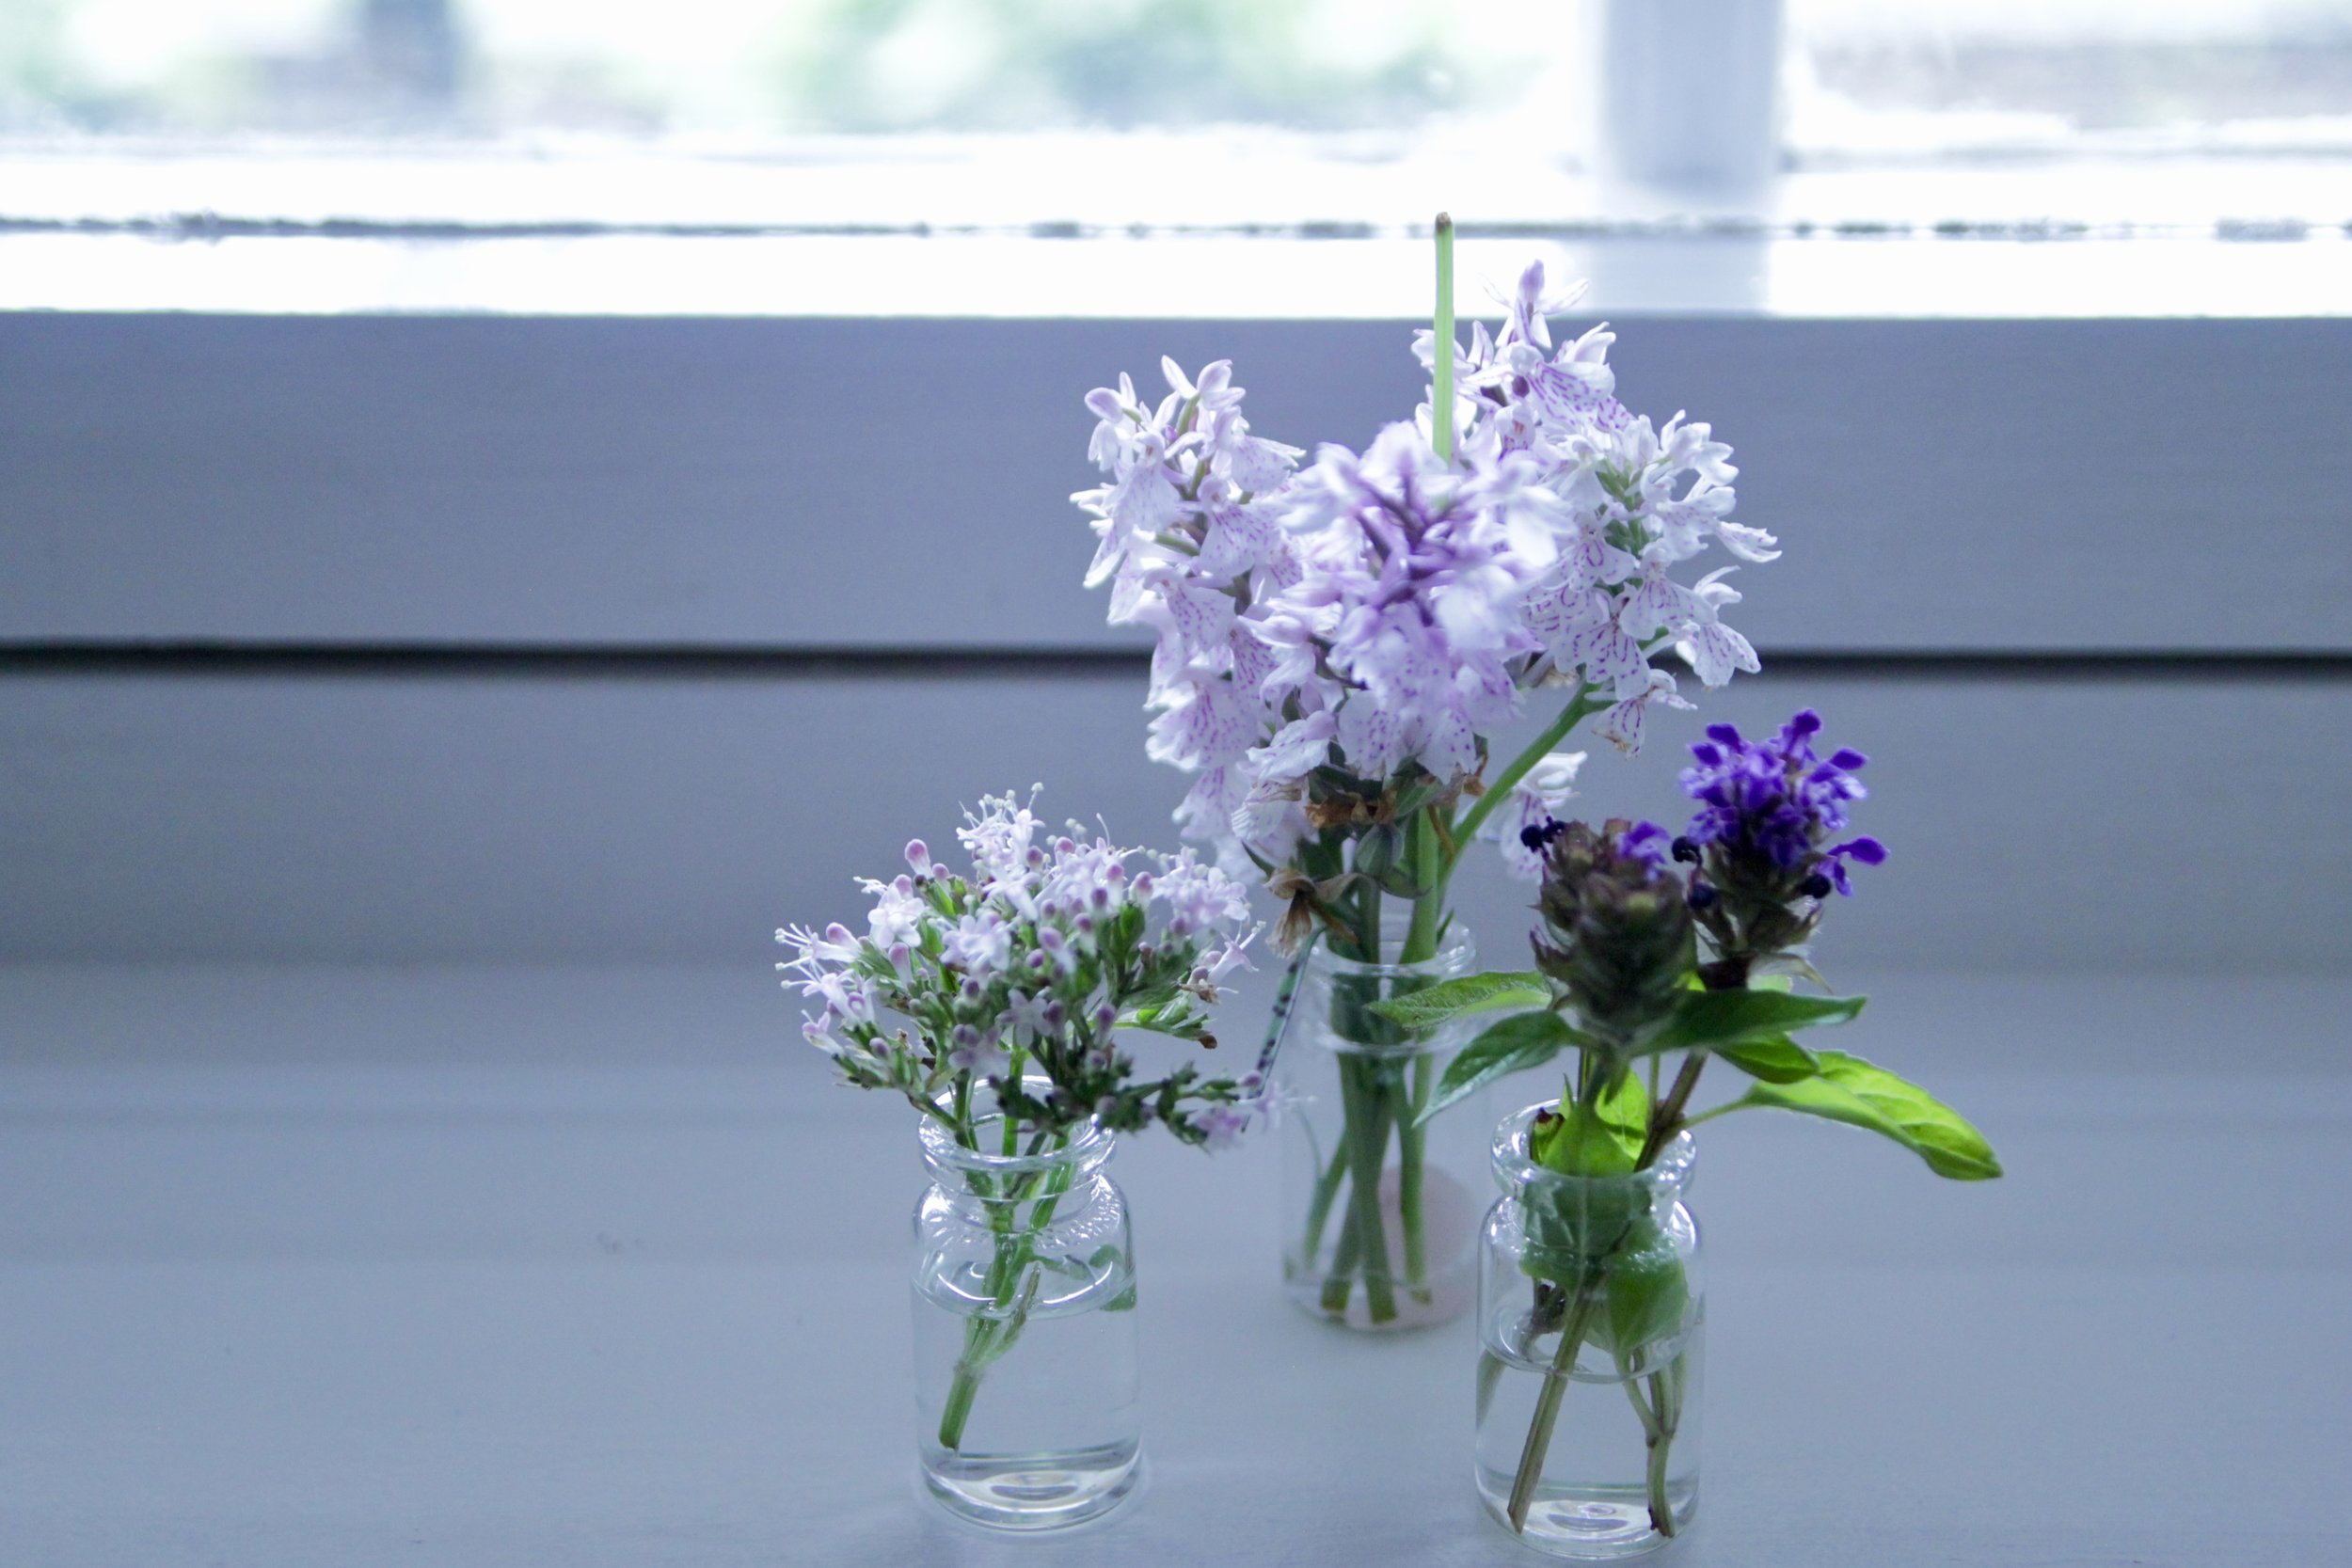 Yesterday's gathering. From left: Valerian flower, Spotted Orchid & Prunella Vulgaris (Self Heal)